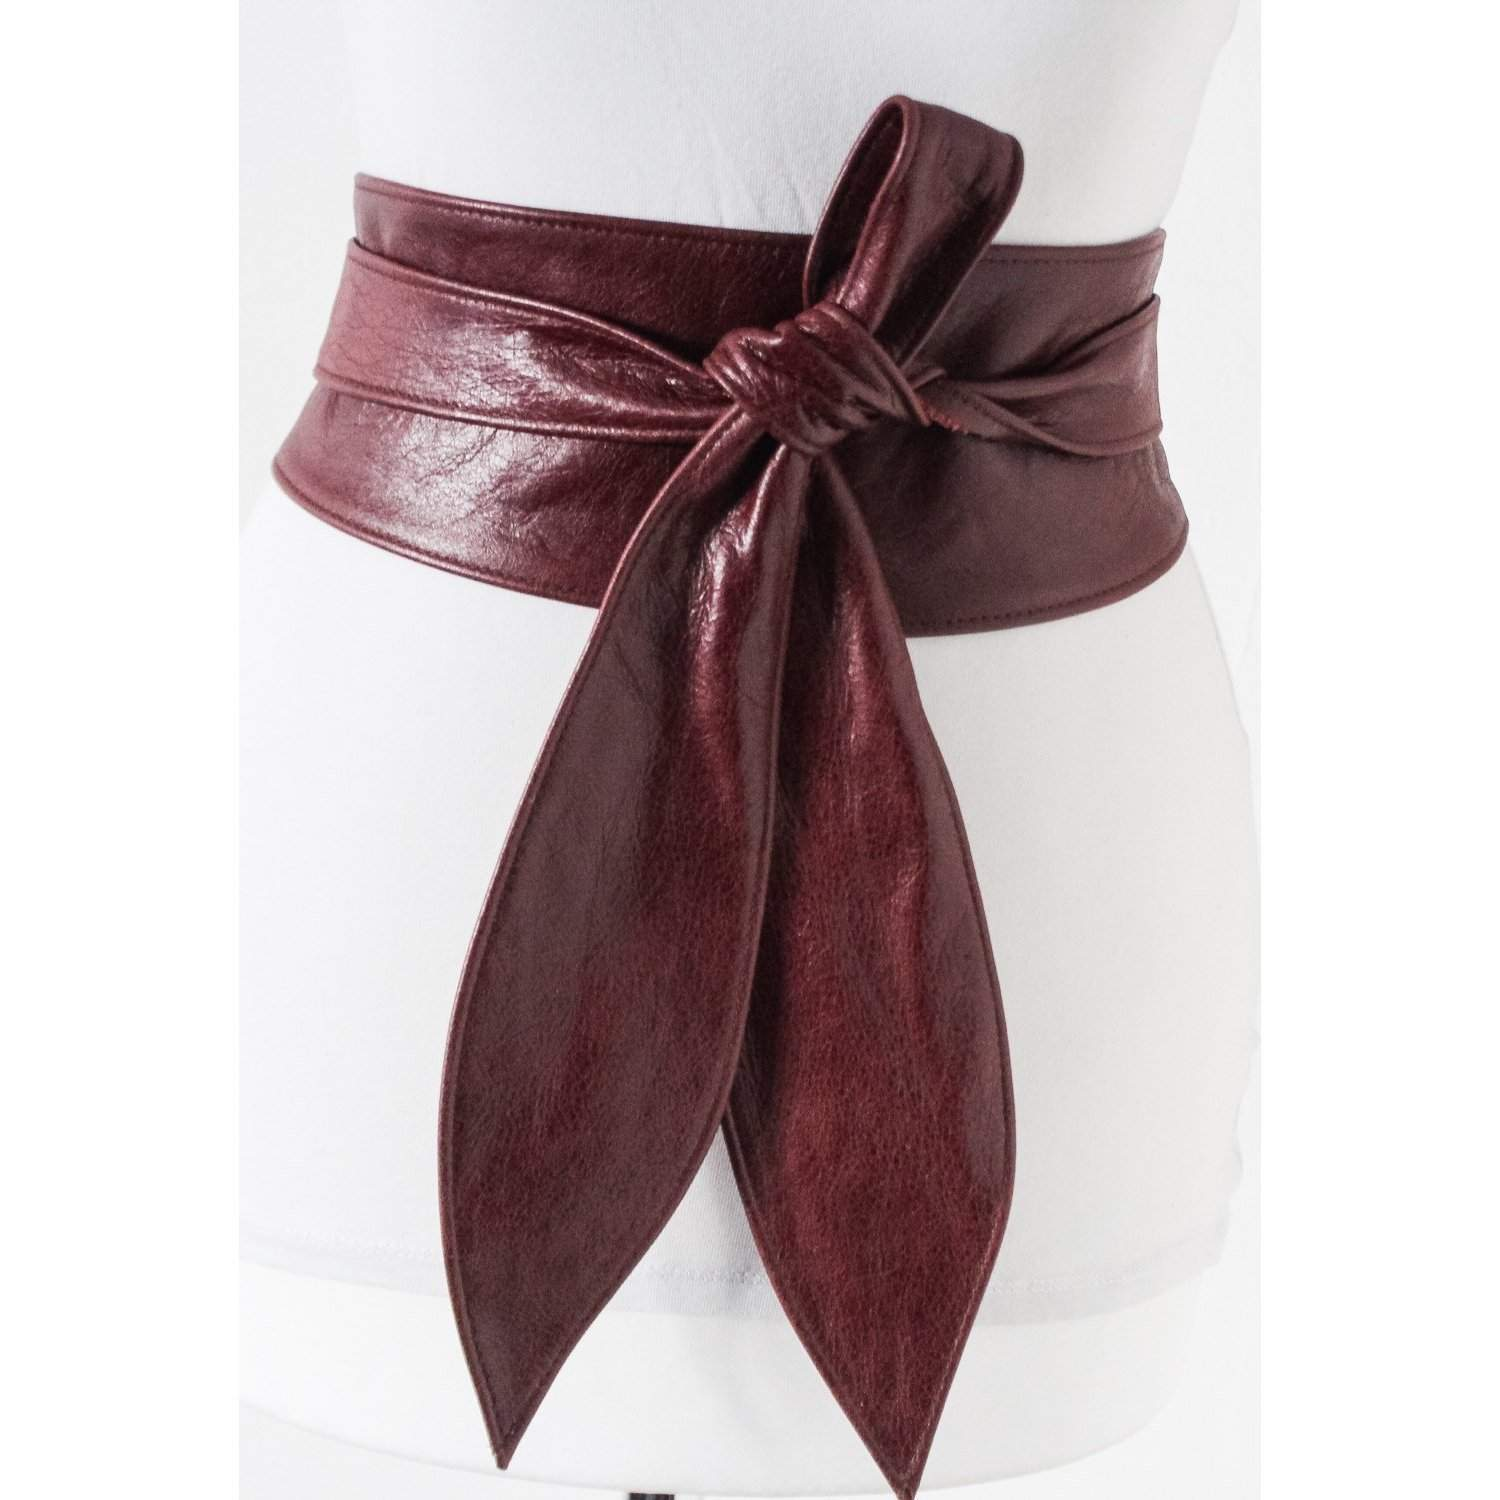 Maroon Burgundy Leather Obi Belt | Leather tie belt | Real Leather Belt| Ladies Belt | Plus size belts - loveyaayaa